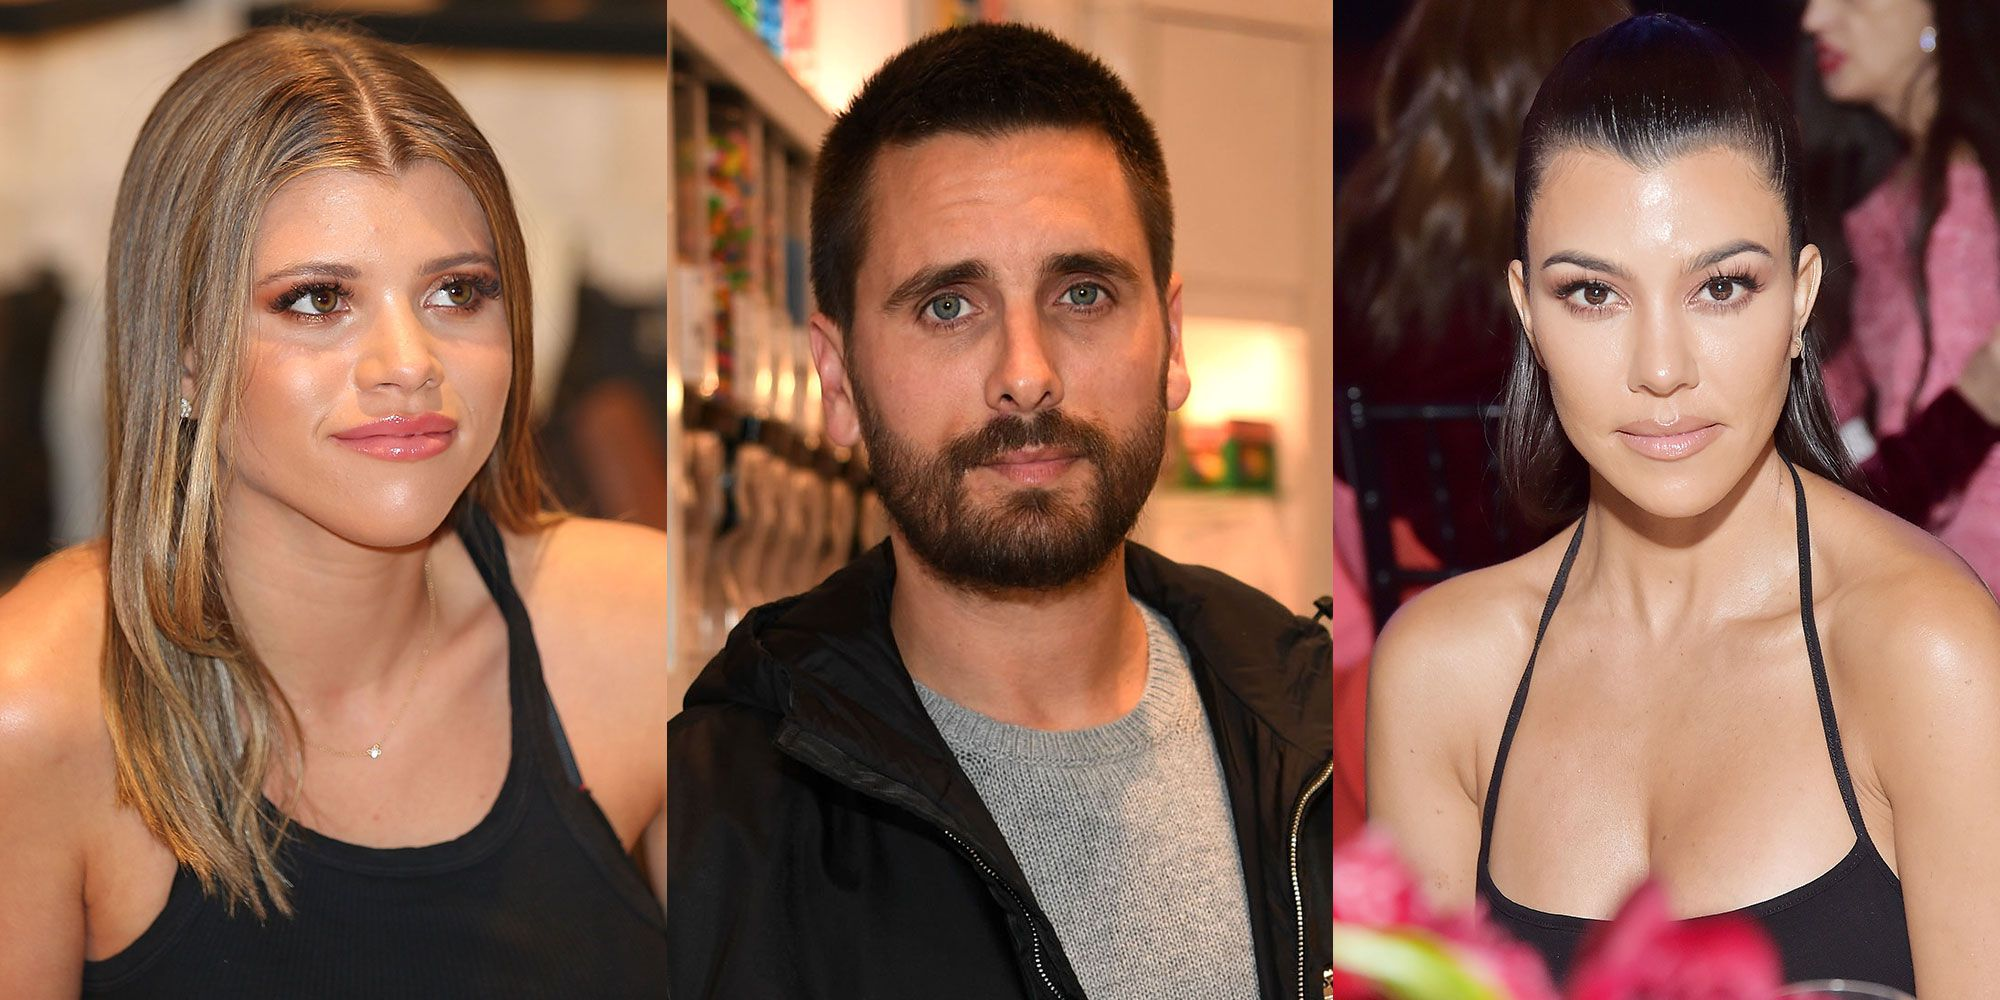 heres-how-sofia-richie-reportedly-feels-about-a-potential-reunion-between-scott-disick-and-kourtney-kardashian